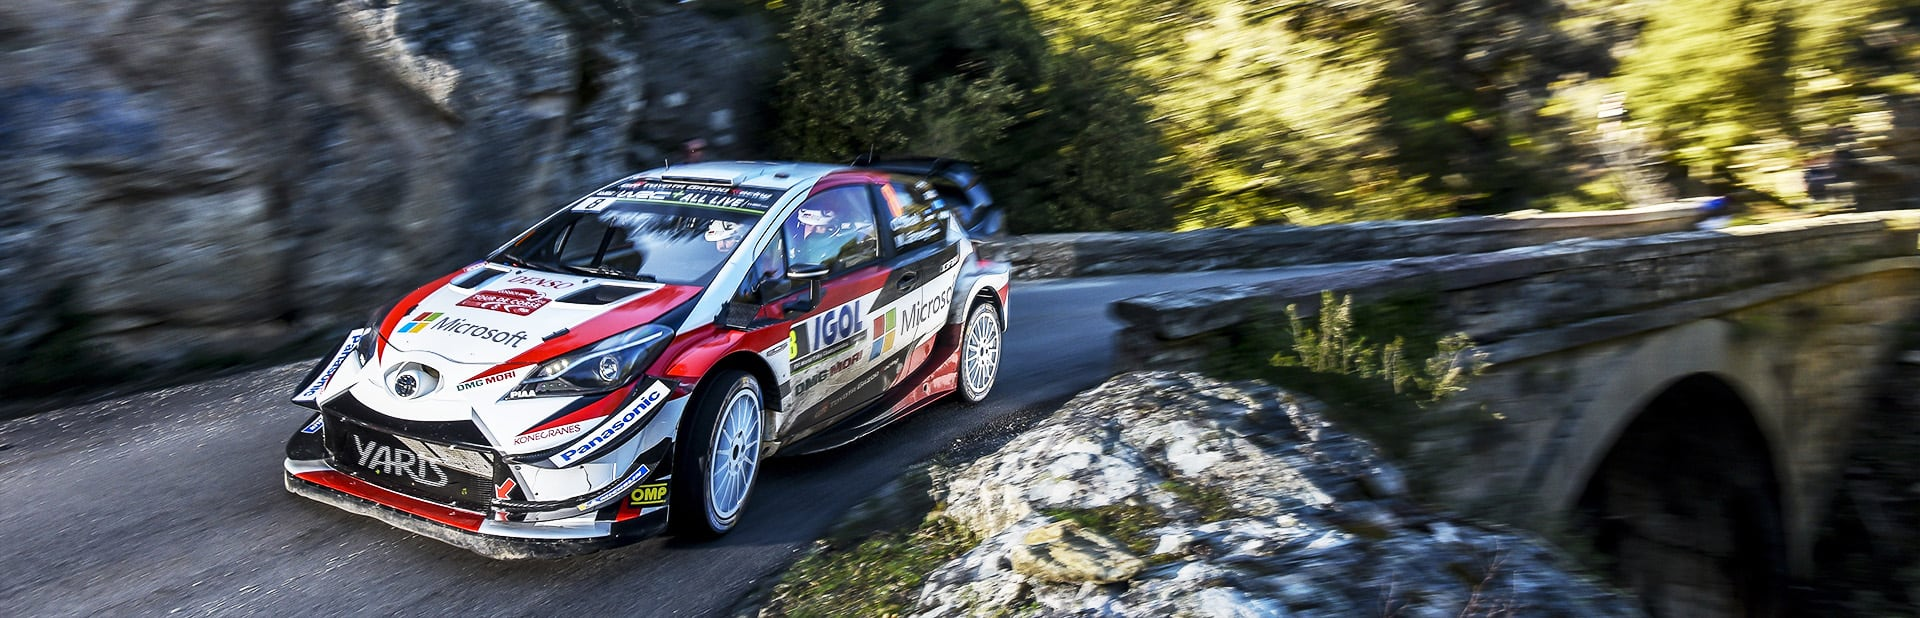 Rally France (Tour de Corse): Day 3 Tänak takes second, Lappi wins the Power Stage